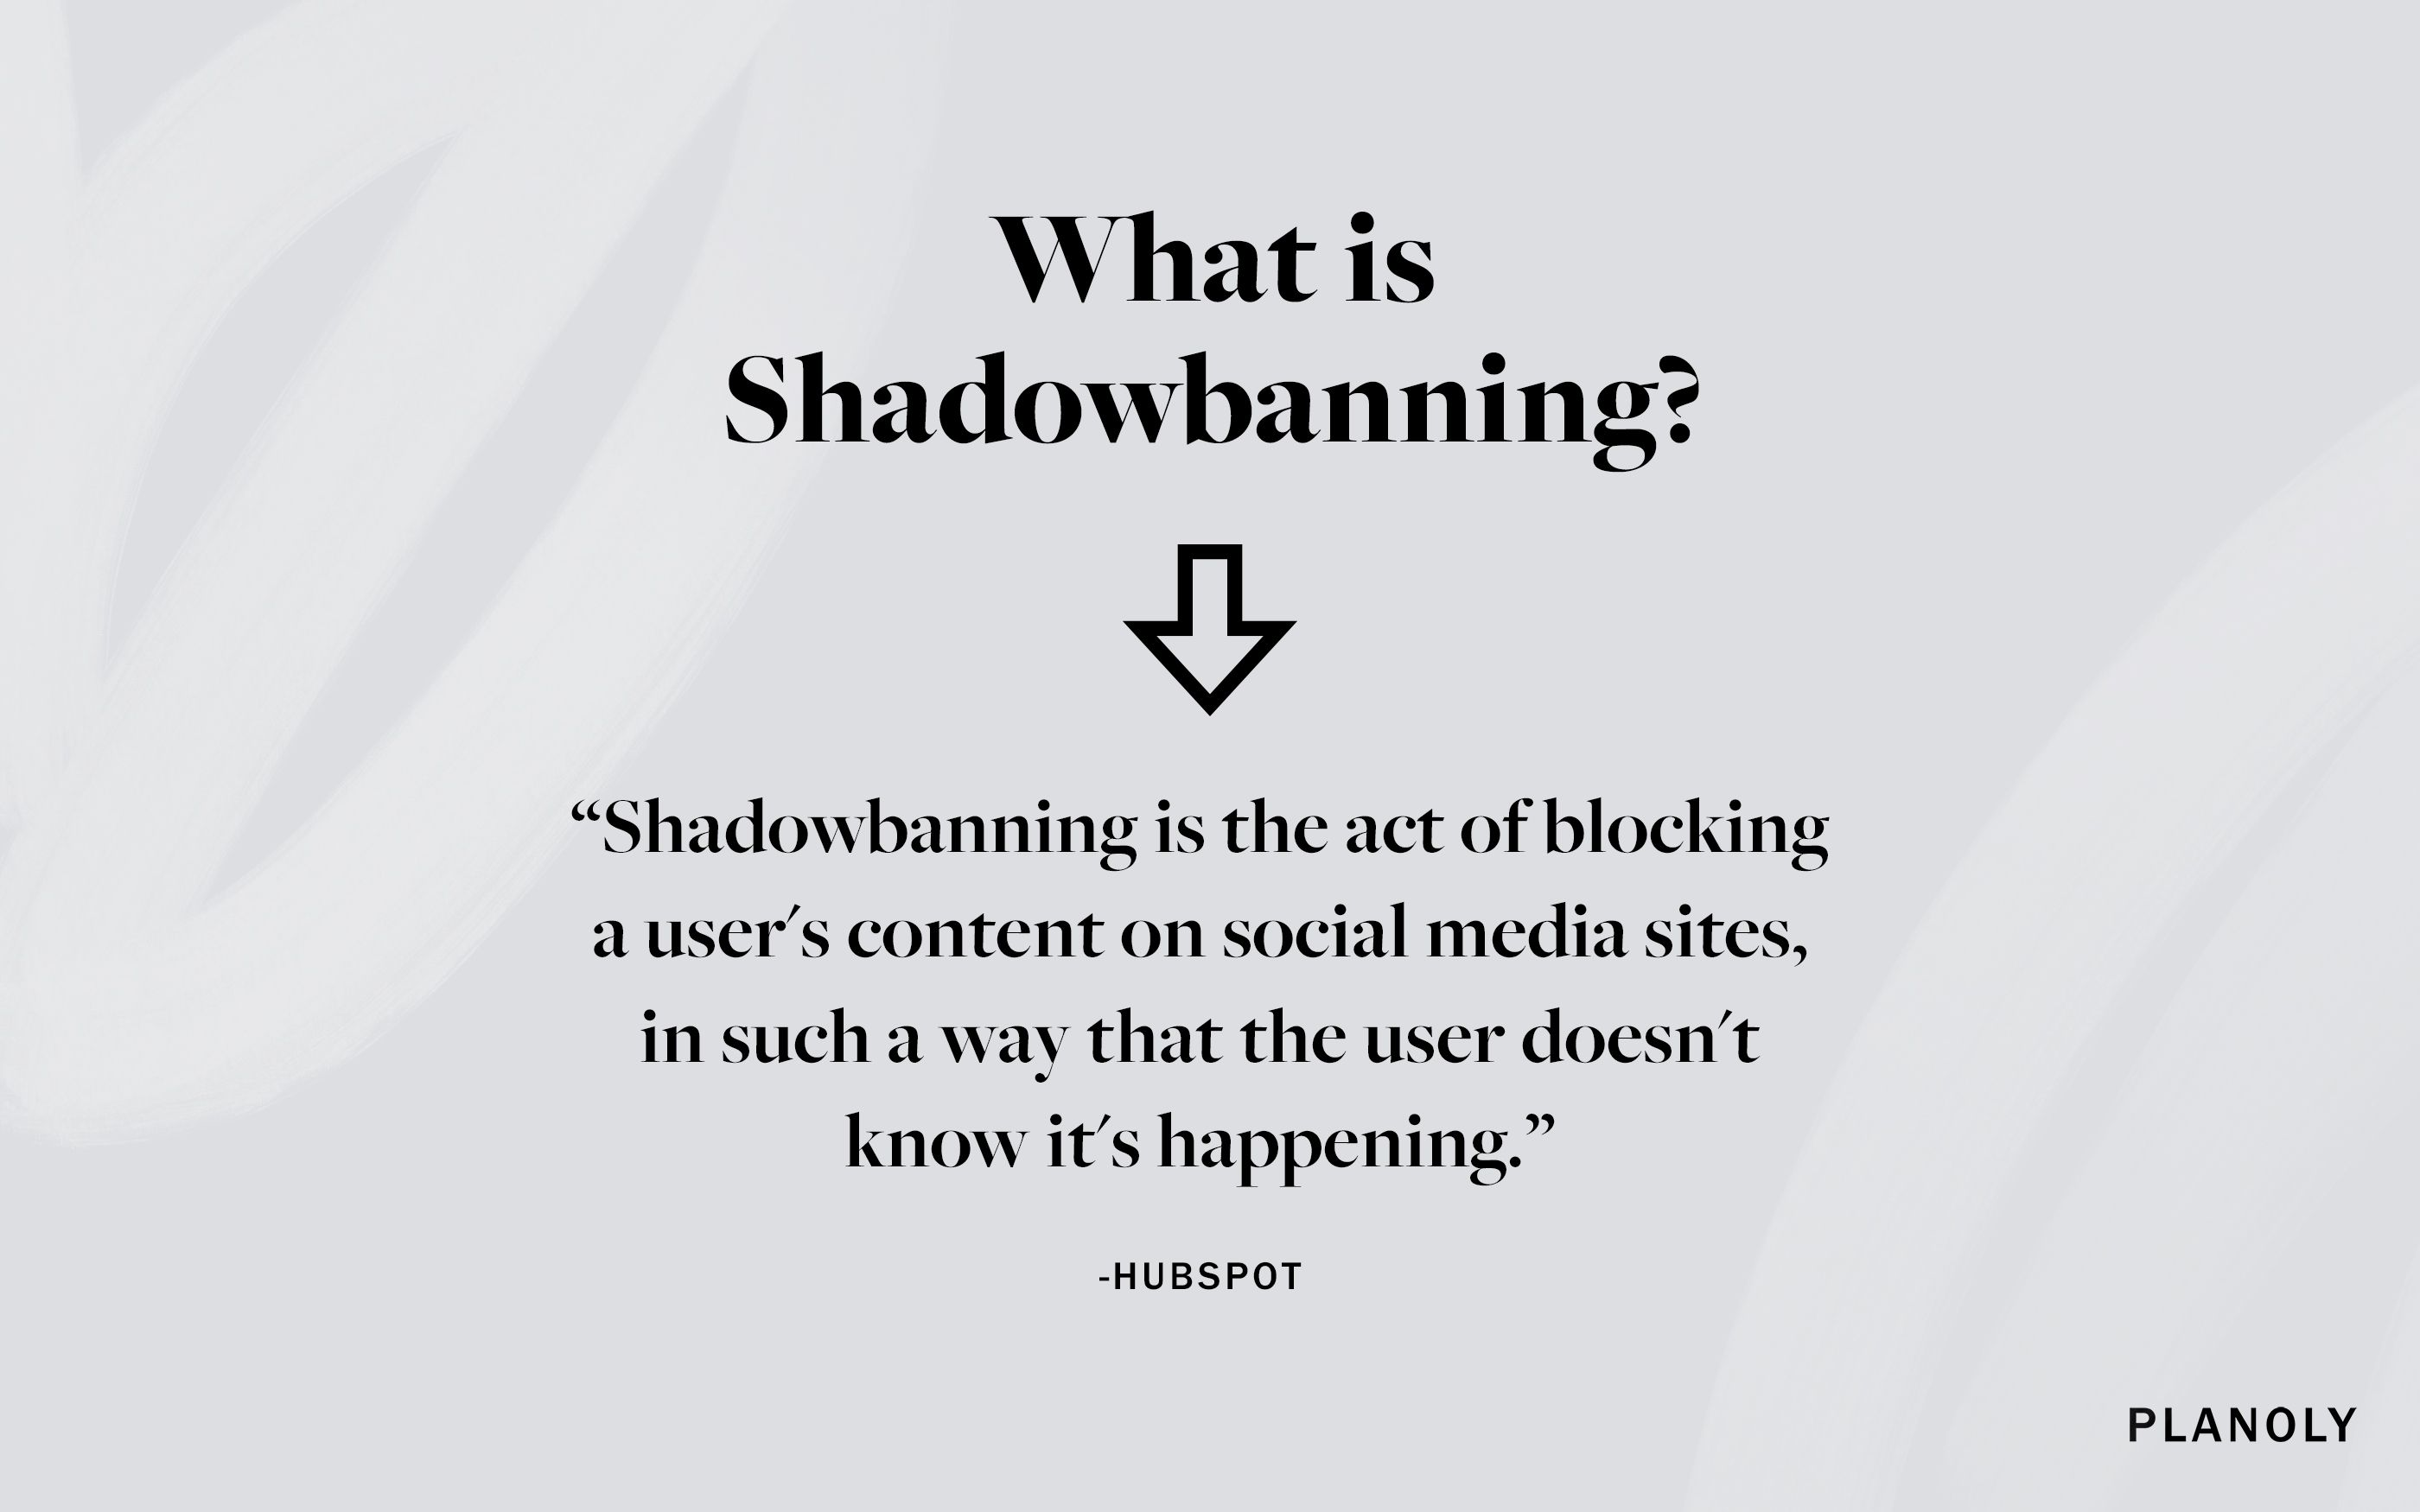 PLANOLY - Blog Post - What is Shadowbanning - Image 1